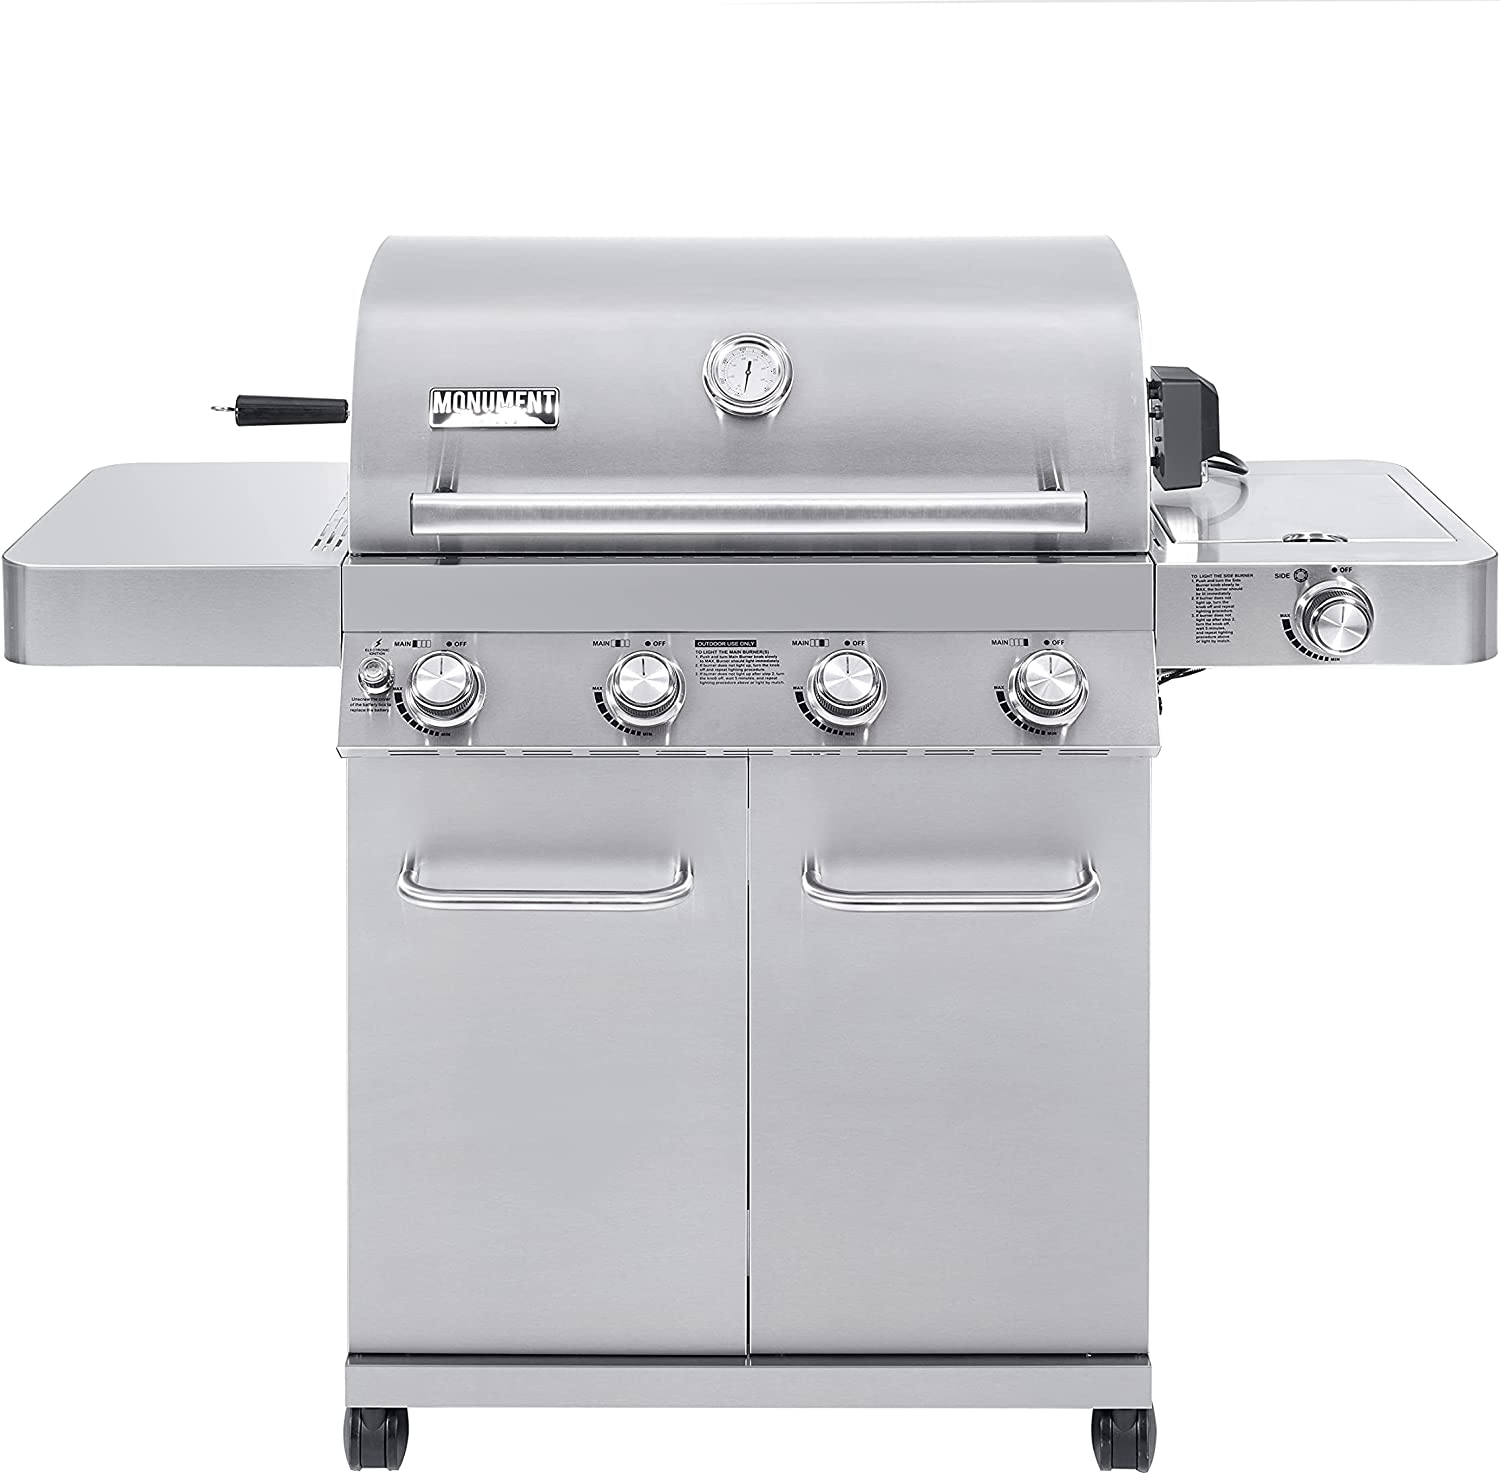 Monument 希少 Grills 17842 Stainless Steel Grill Burner クリアランスsale!期間限定! Propane 4 Gas